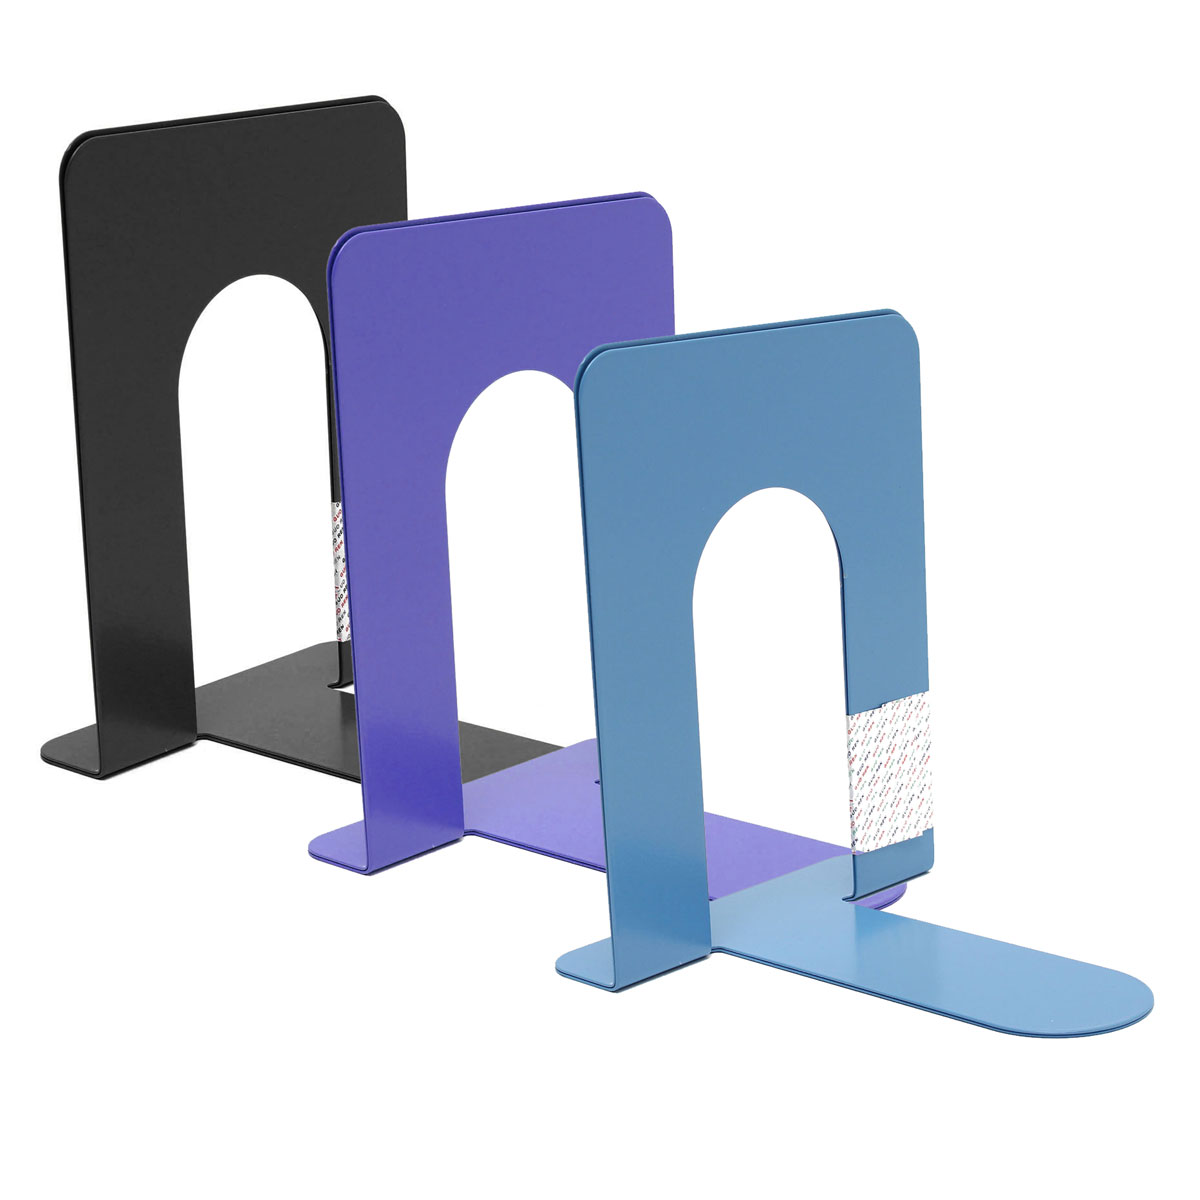 Office & School Supplies Bookends Reasonable 1 Pair Portable Heavy Duty Metal Book End Shelf Bookend Holder Student Good Helper Office School Supplies Stationery Attractive And Durable